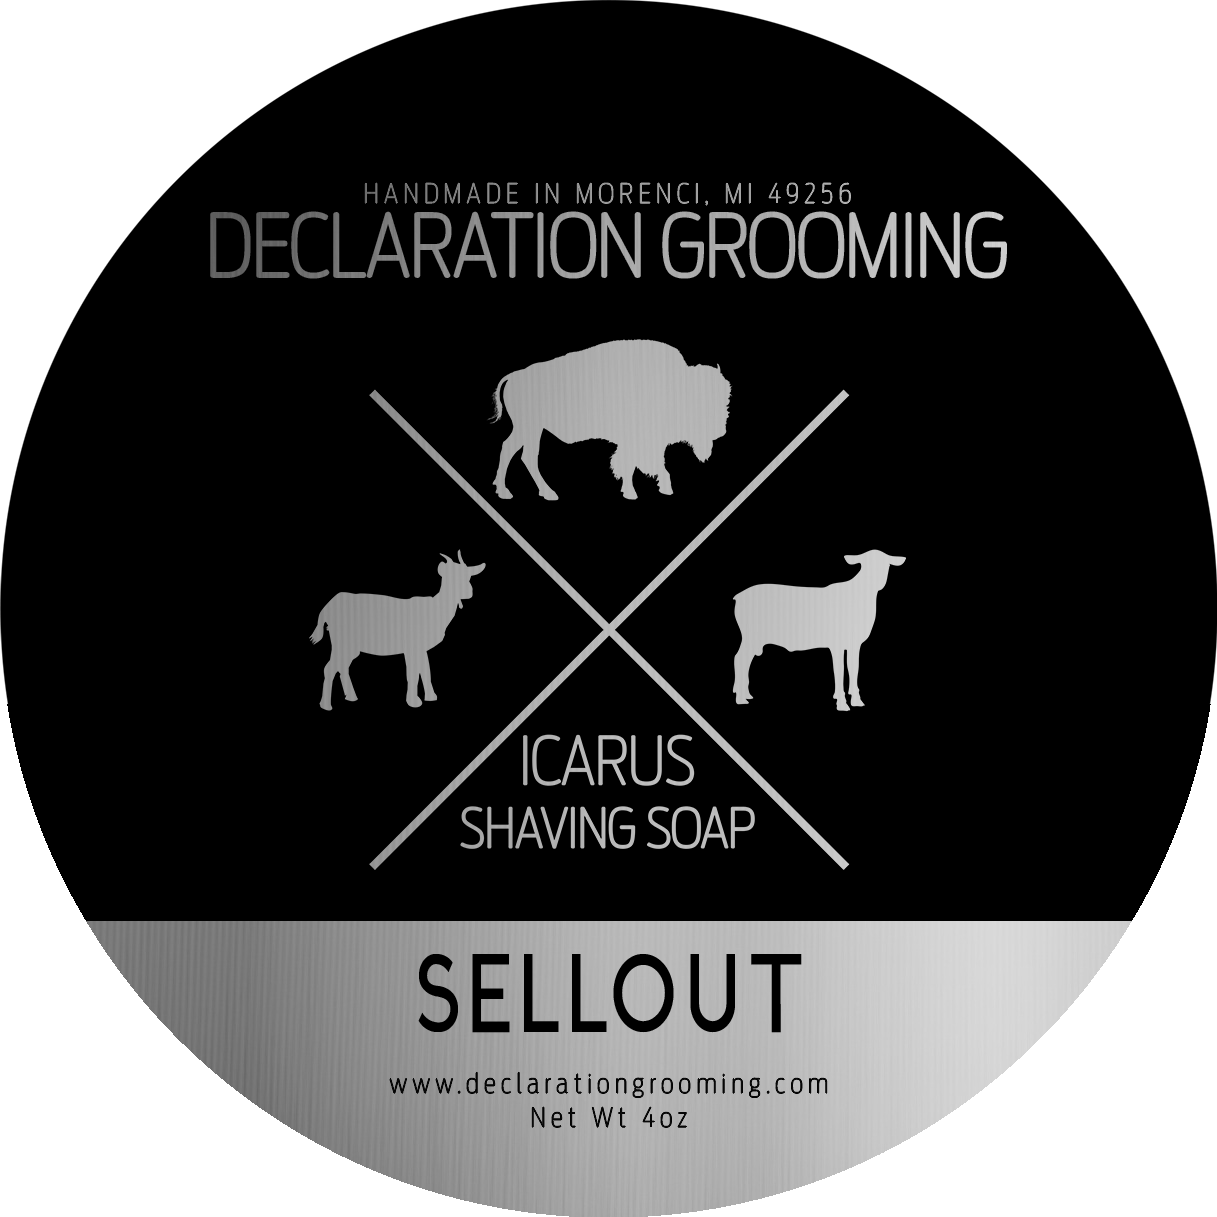 Declaration Grooming - Sellout - Soap image